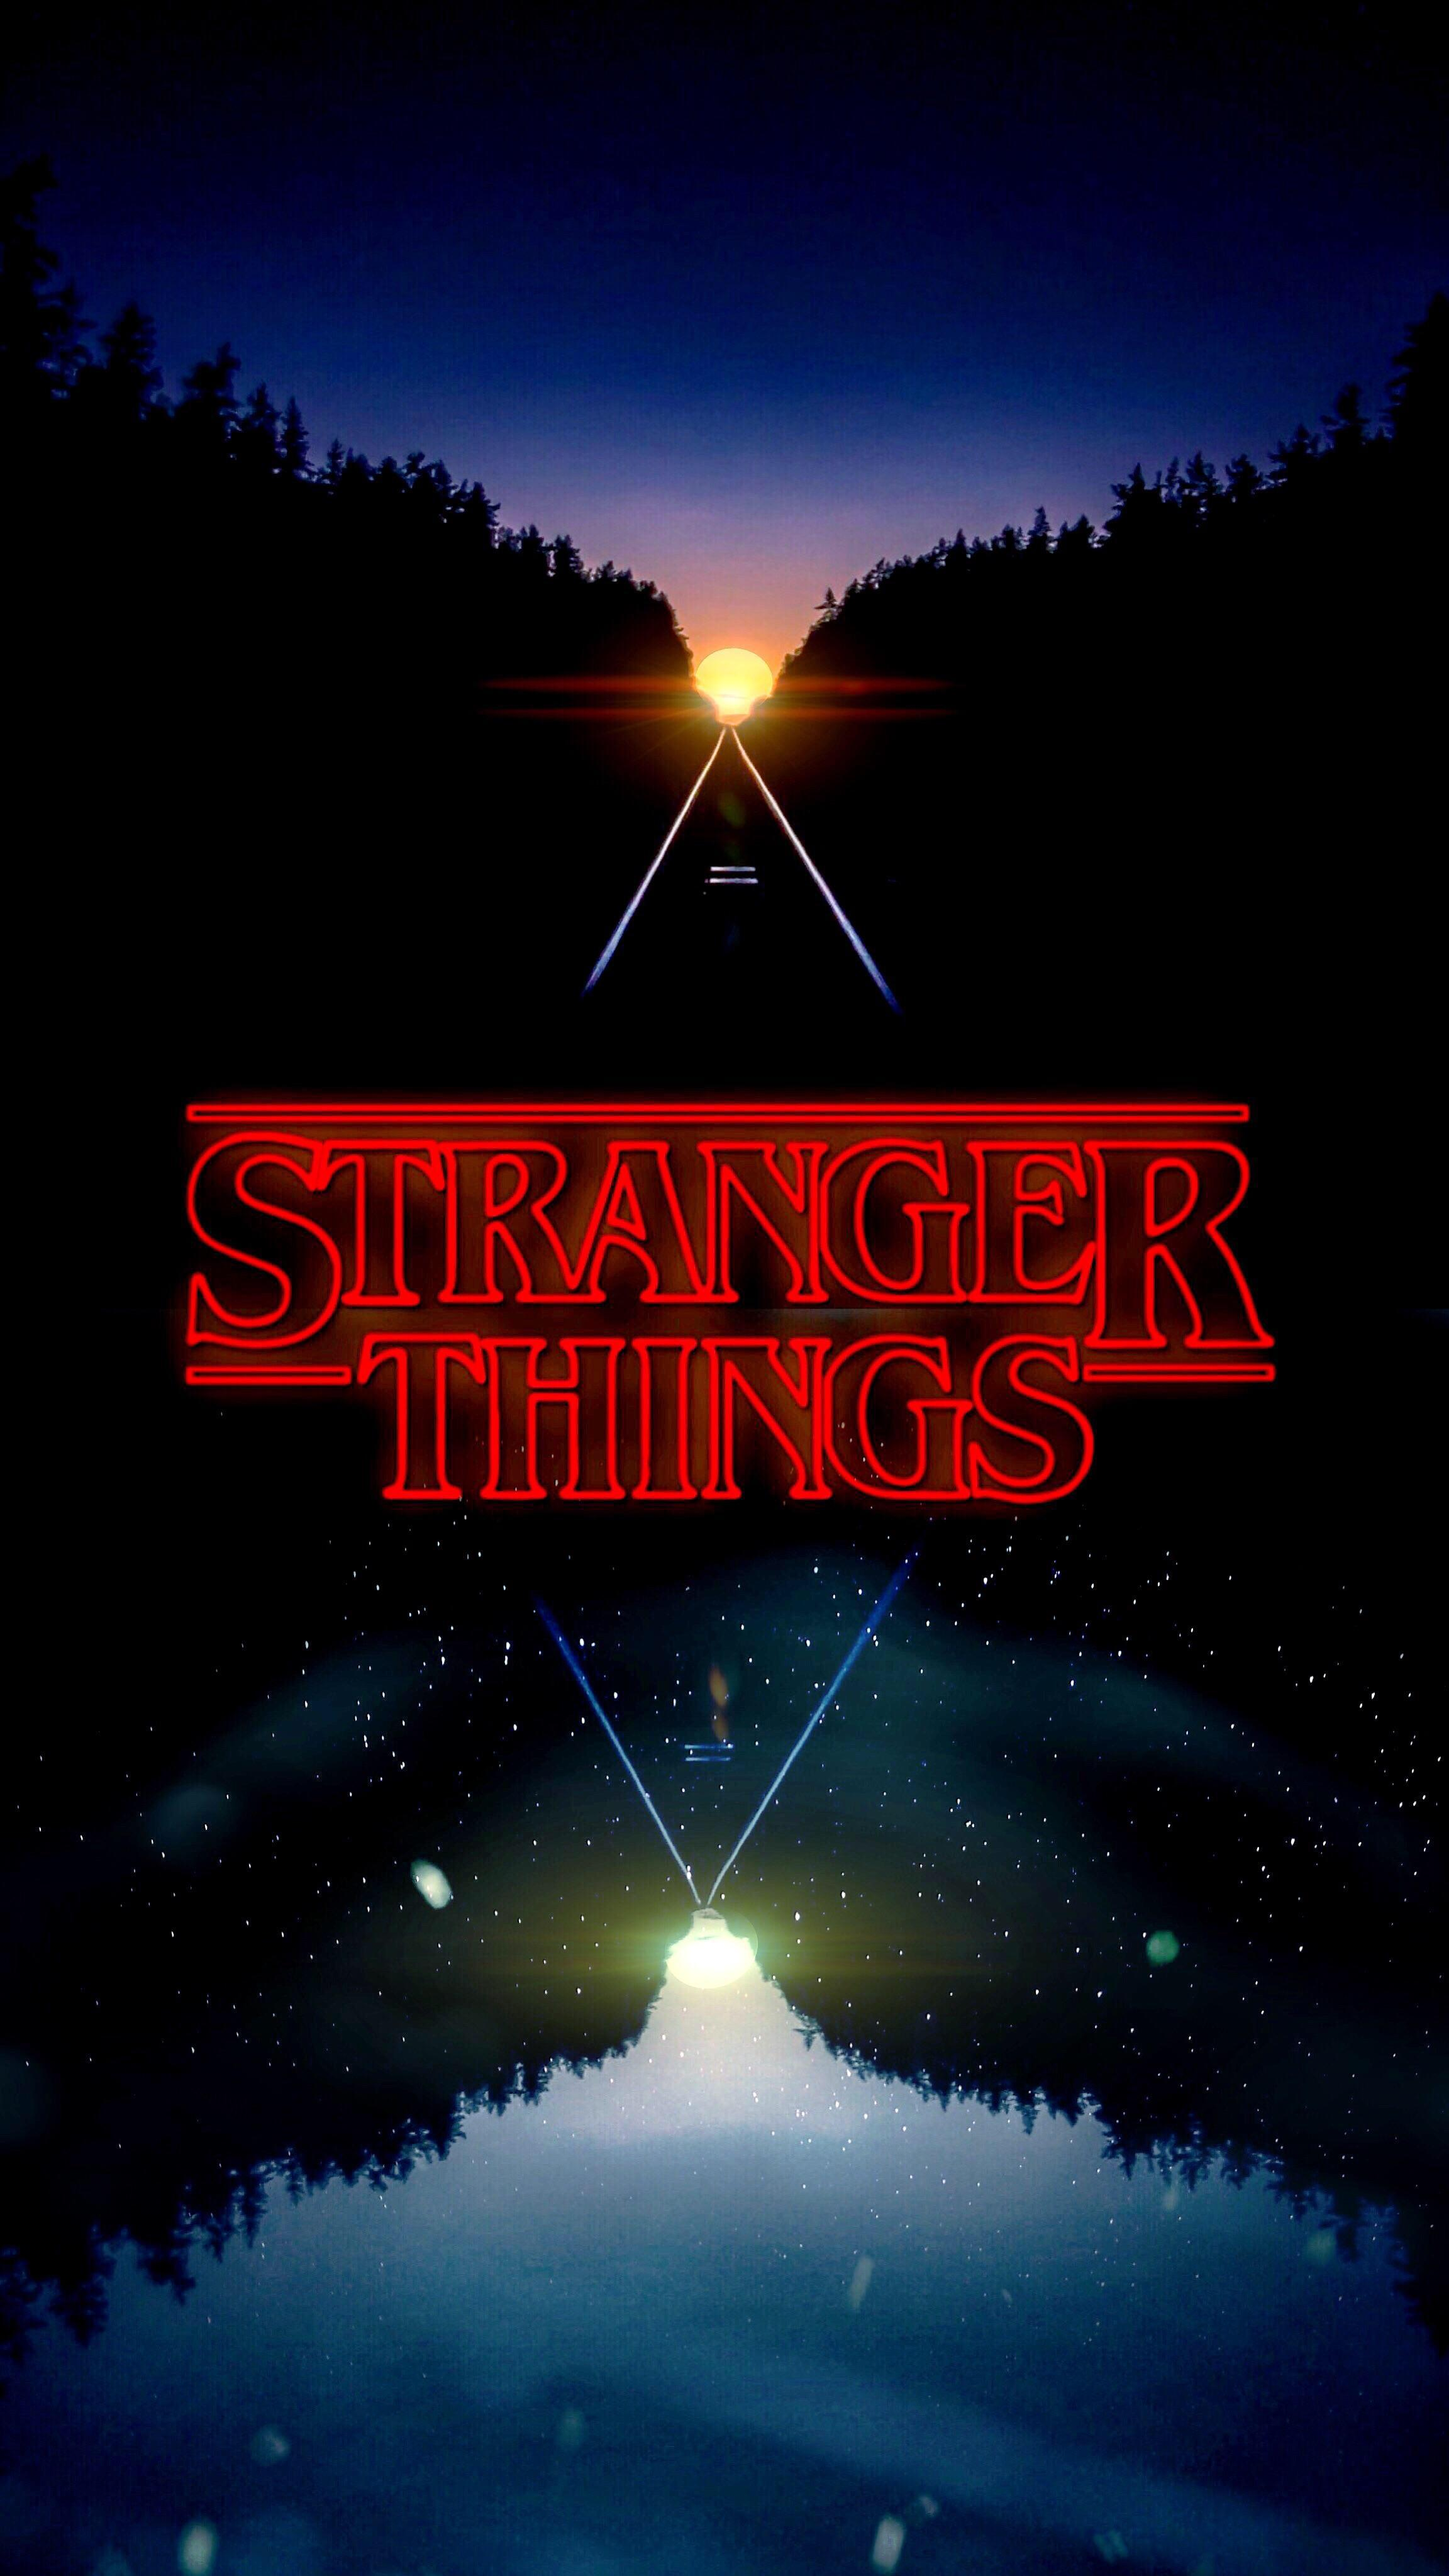 Discussion] Stranger Things Fans A nice setup with this wallpaper 2304x4095